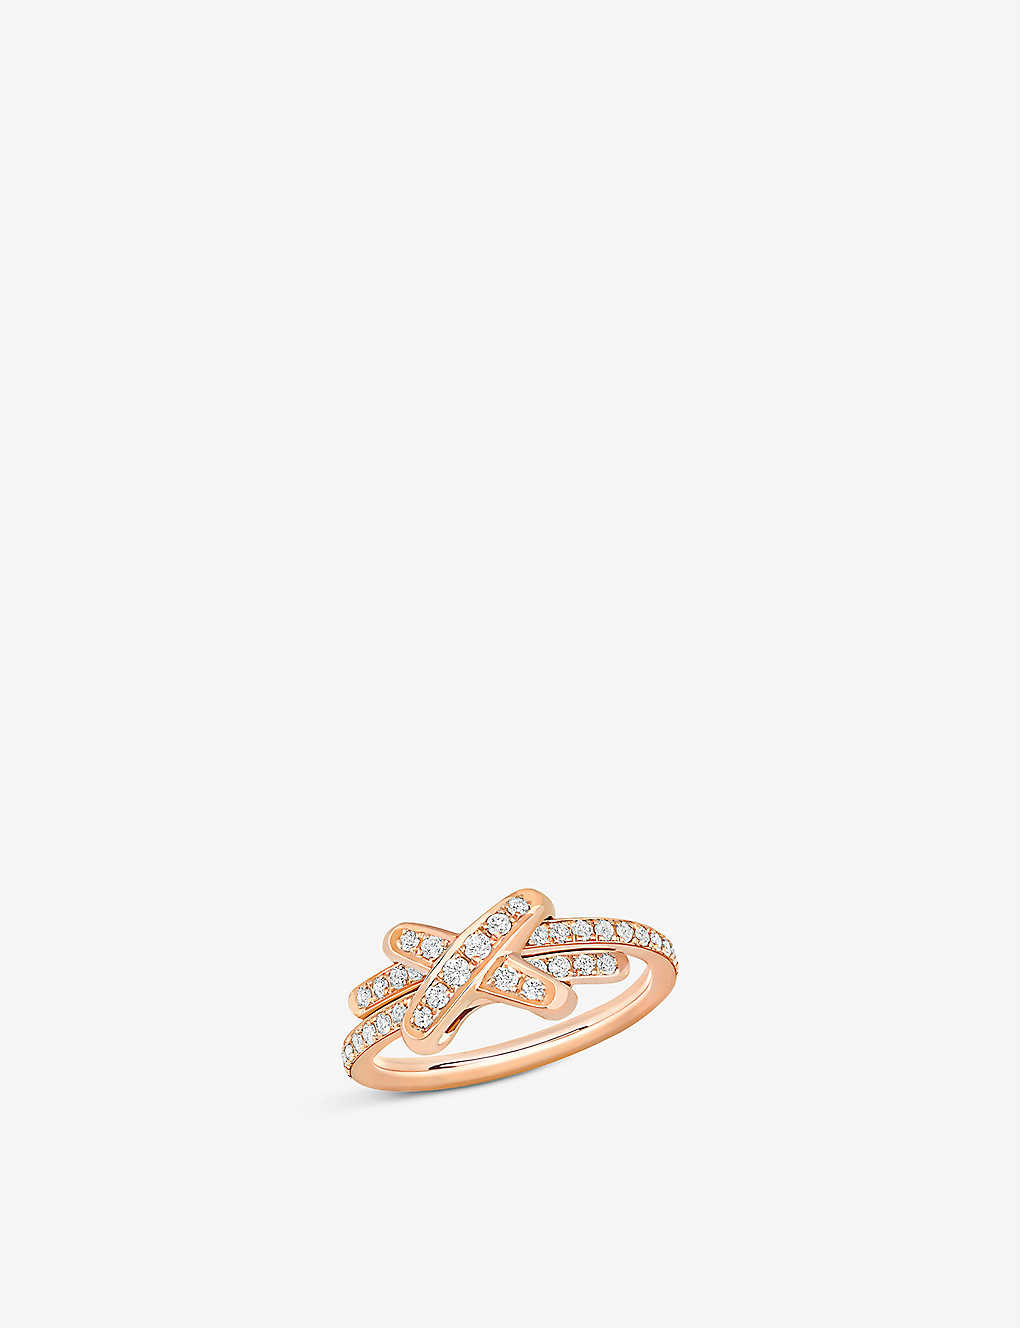 CHAUMET: Jeux de Liens 18ct rose-gold and diamond ring